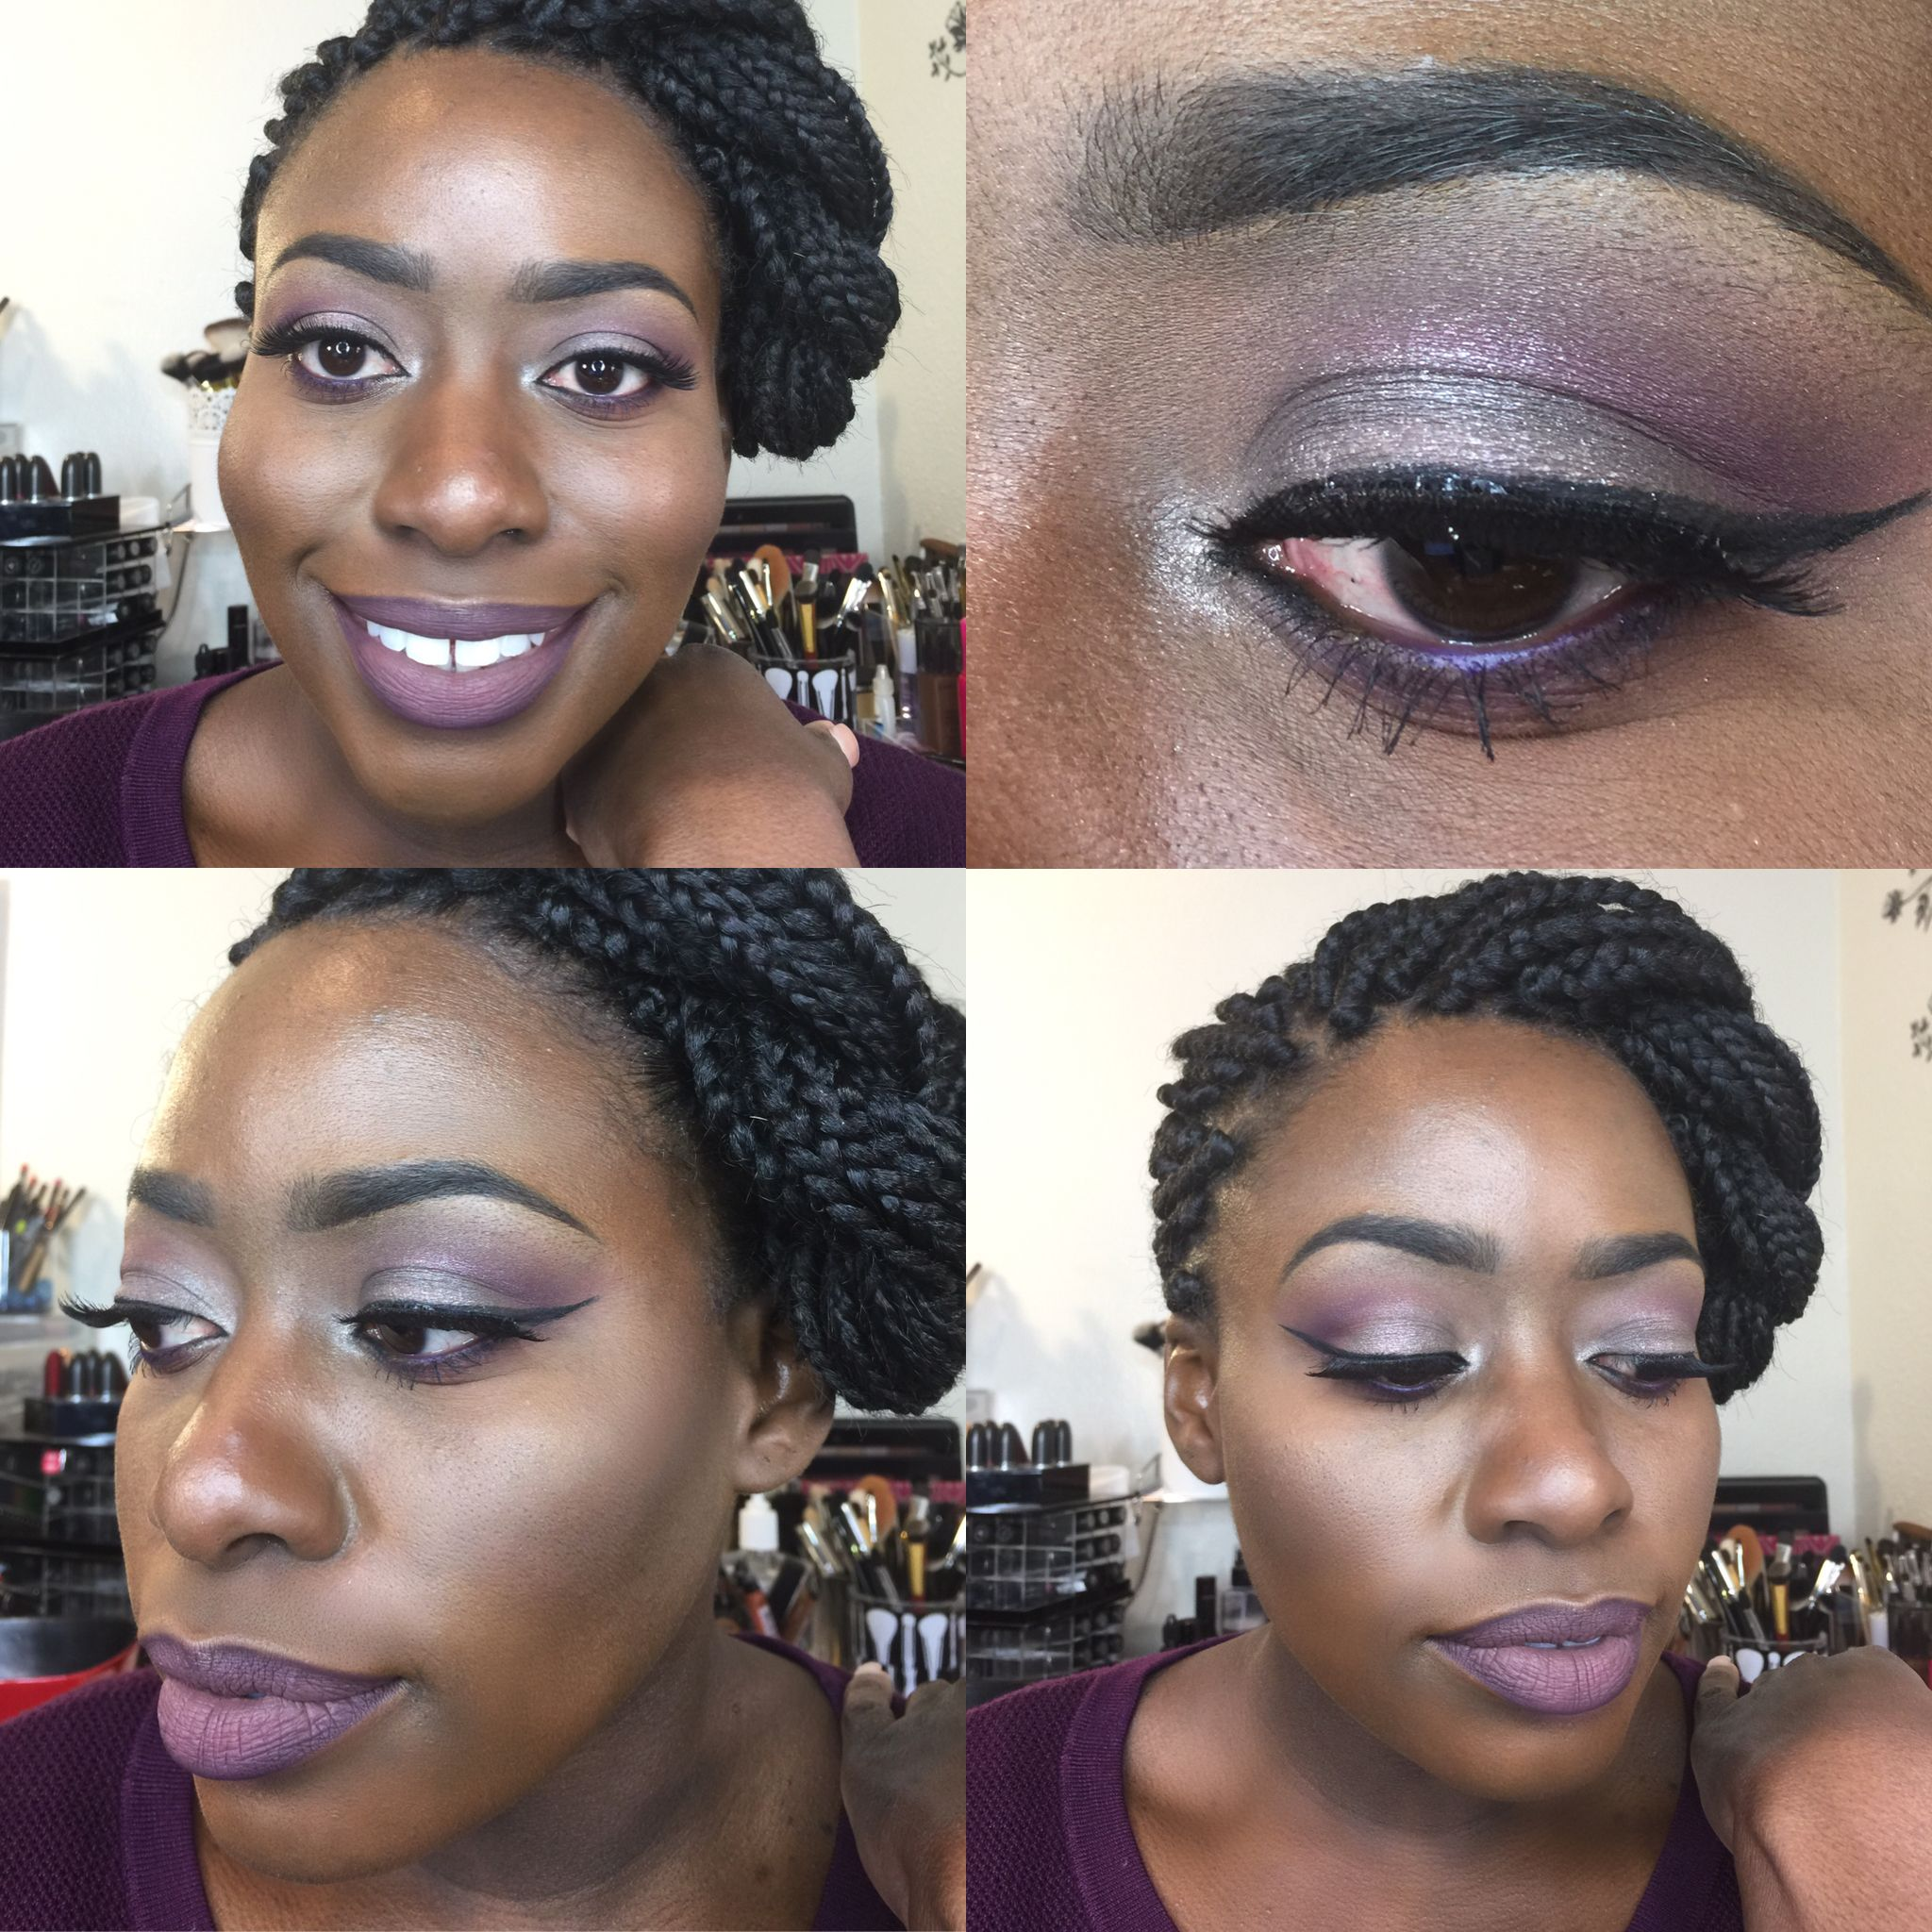 Pin by Diandra Harrell on MAKEUP LOOKS Types of makeup